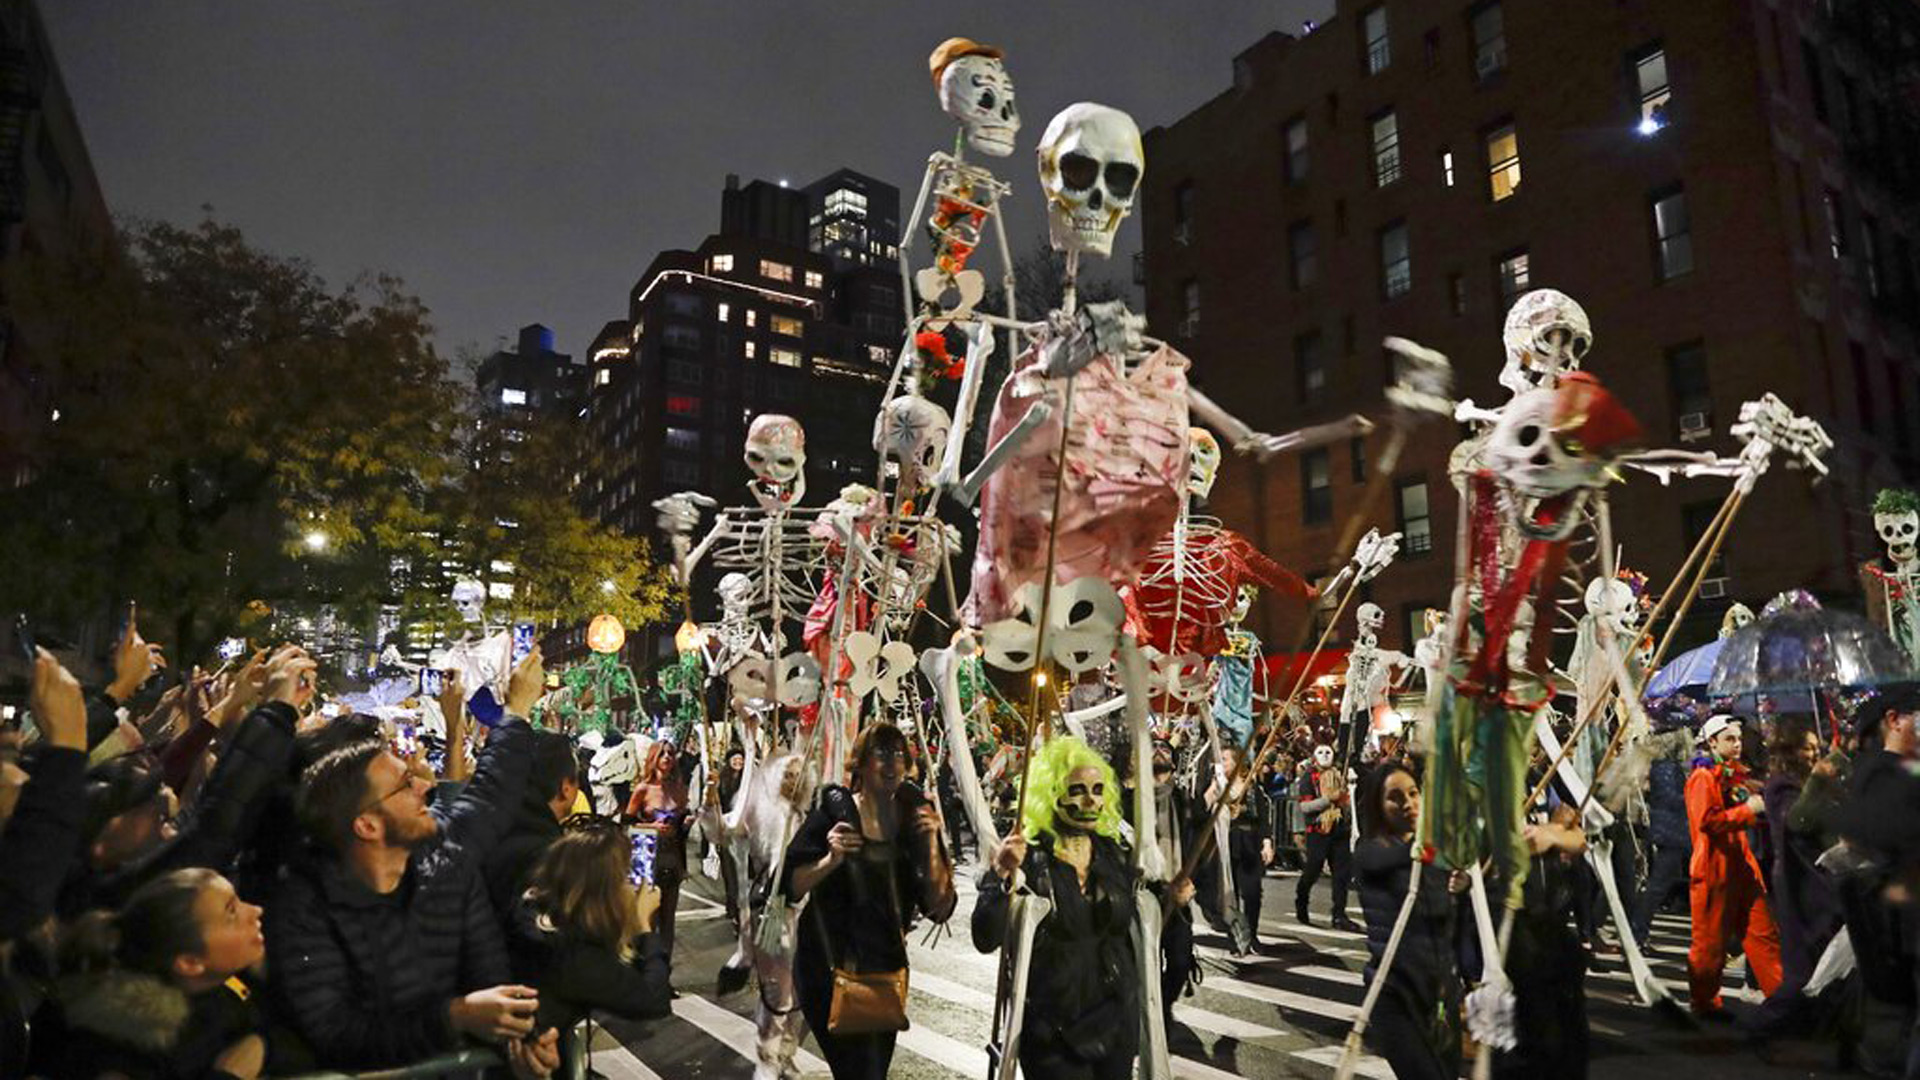 Okc Halloween Parade 2020 Trick or What? Pandemic Halloween is mixed bag all around | KFOR